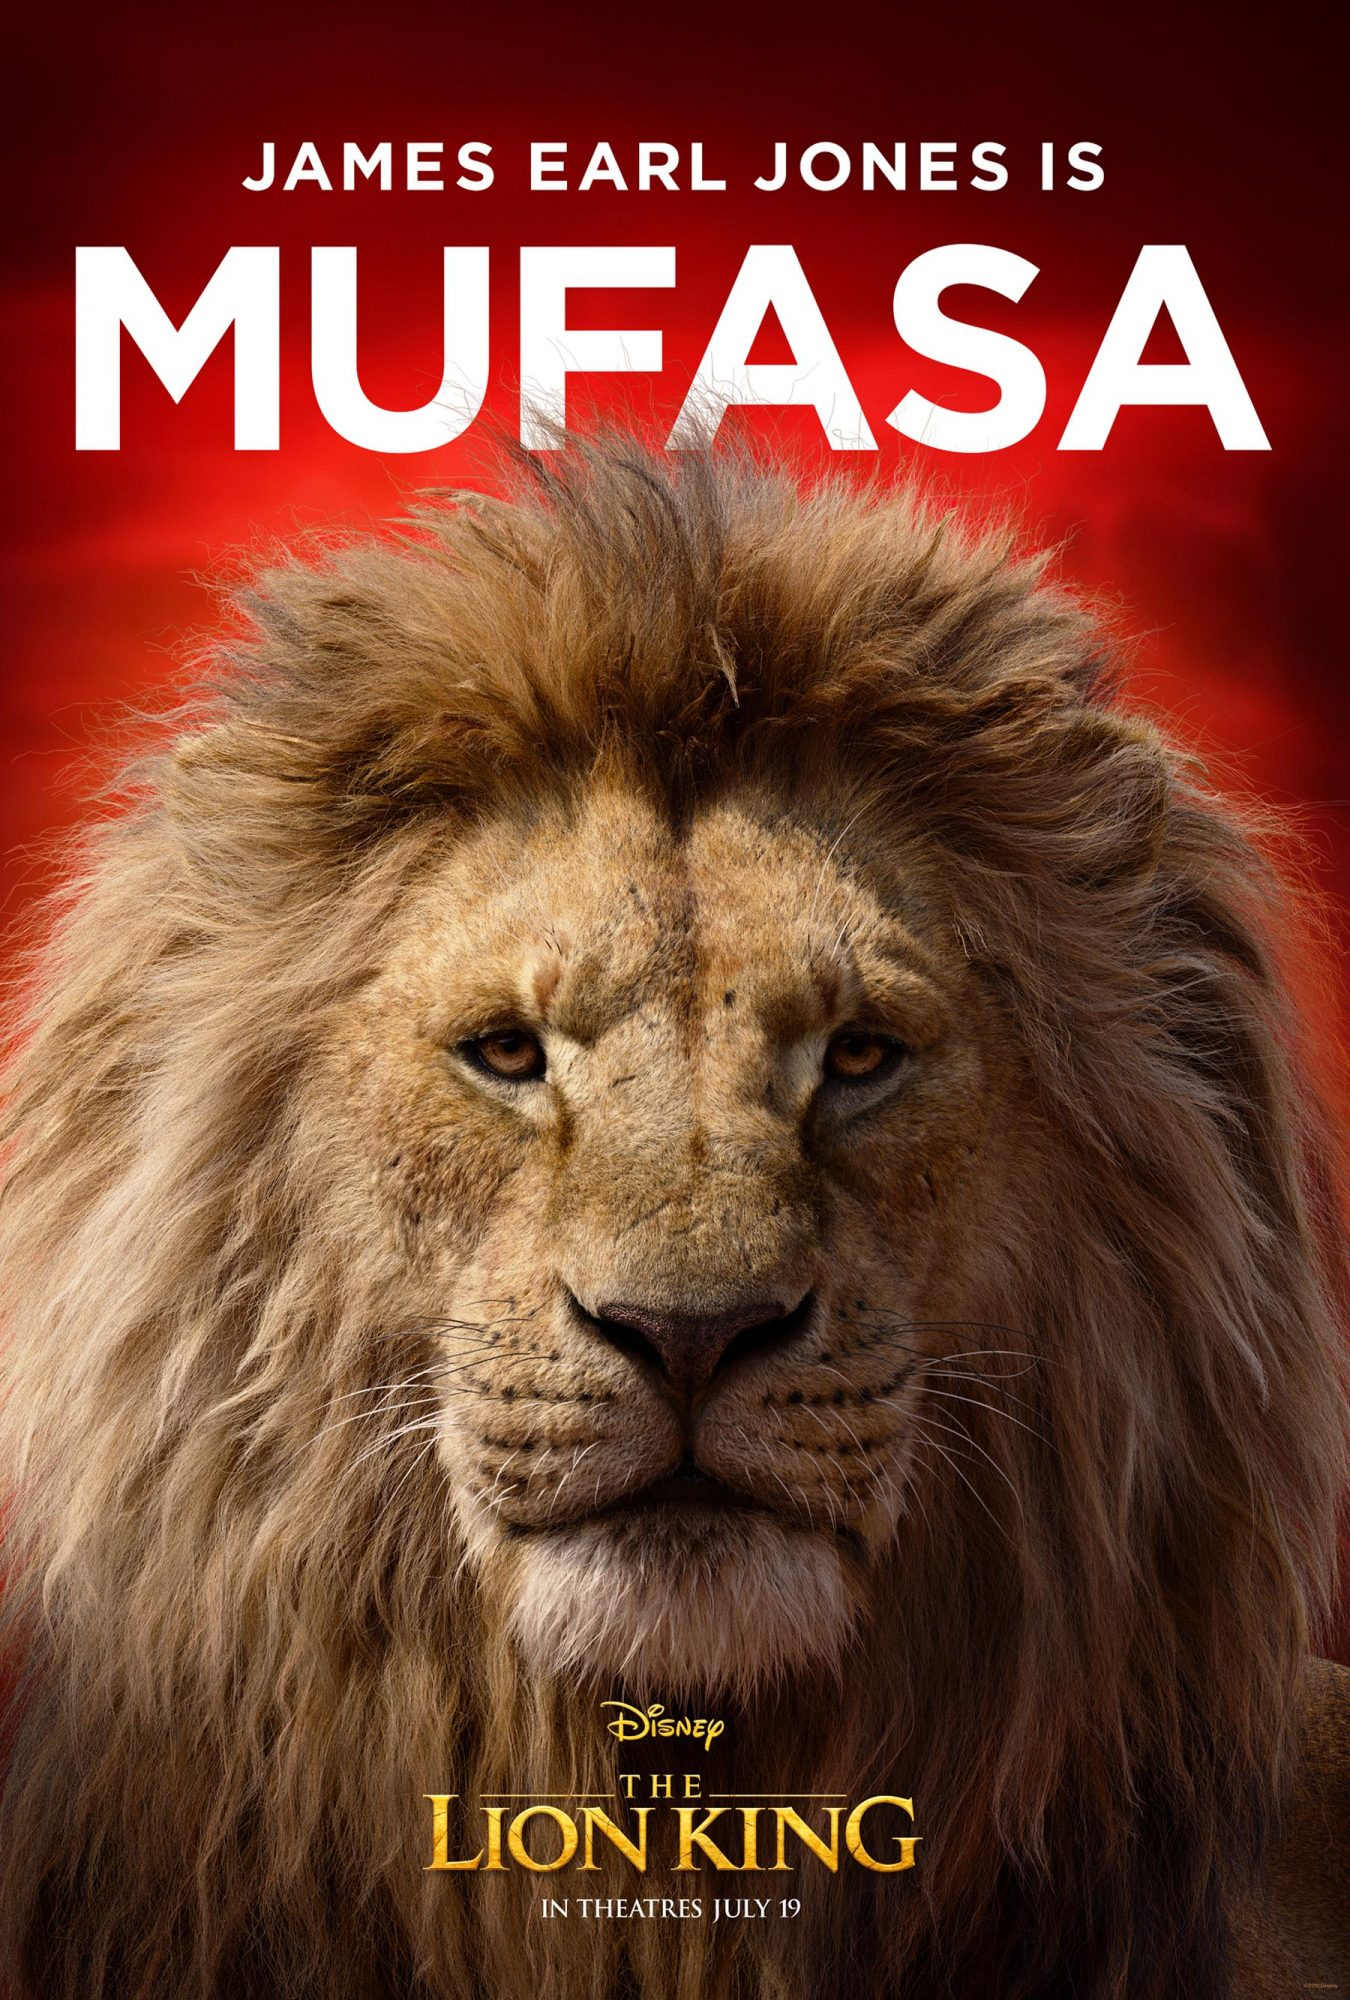 The Lion King Rises See All The Character Posters For The Live Action Film People Com